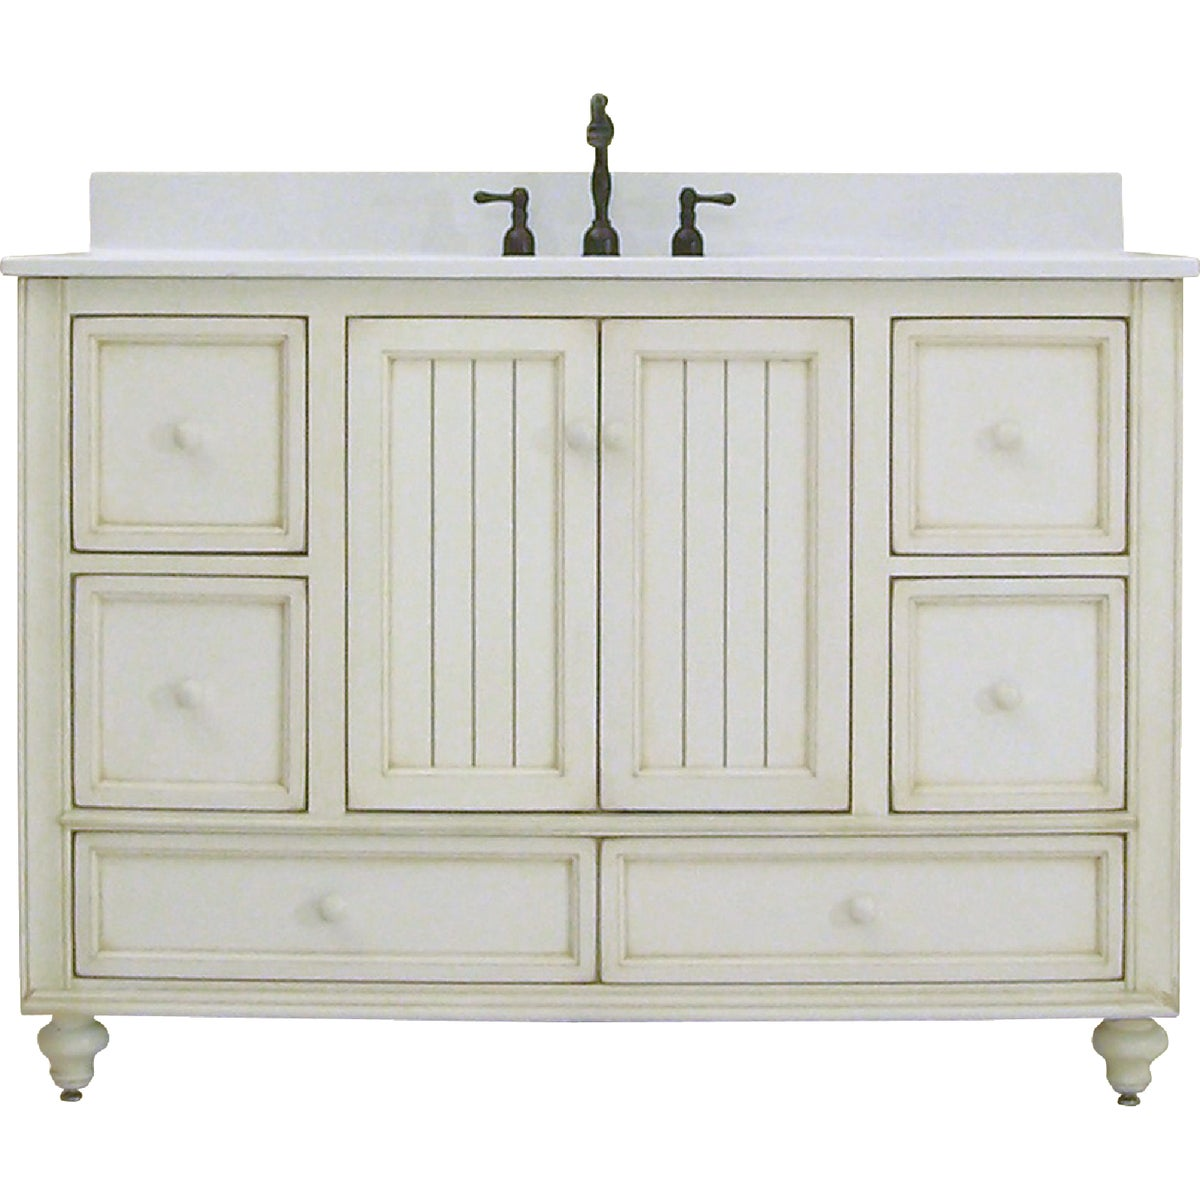 48X21 WH BSTL BCH VANITY - BB4821D by Sunnywood Products